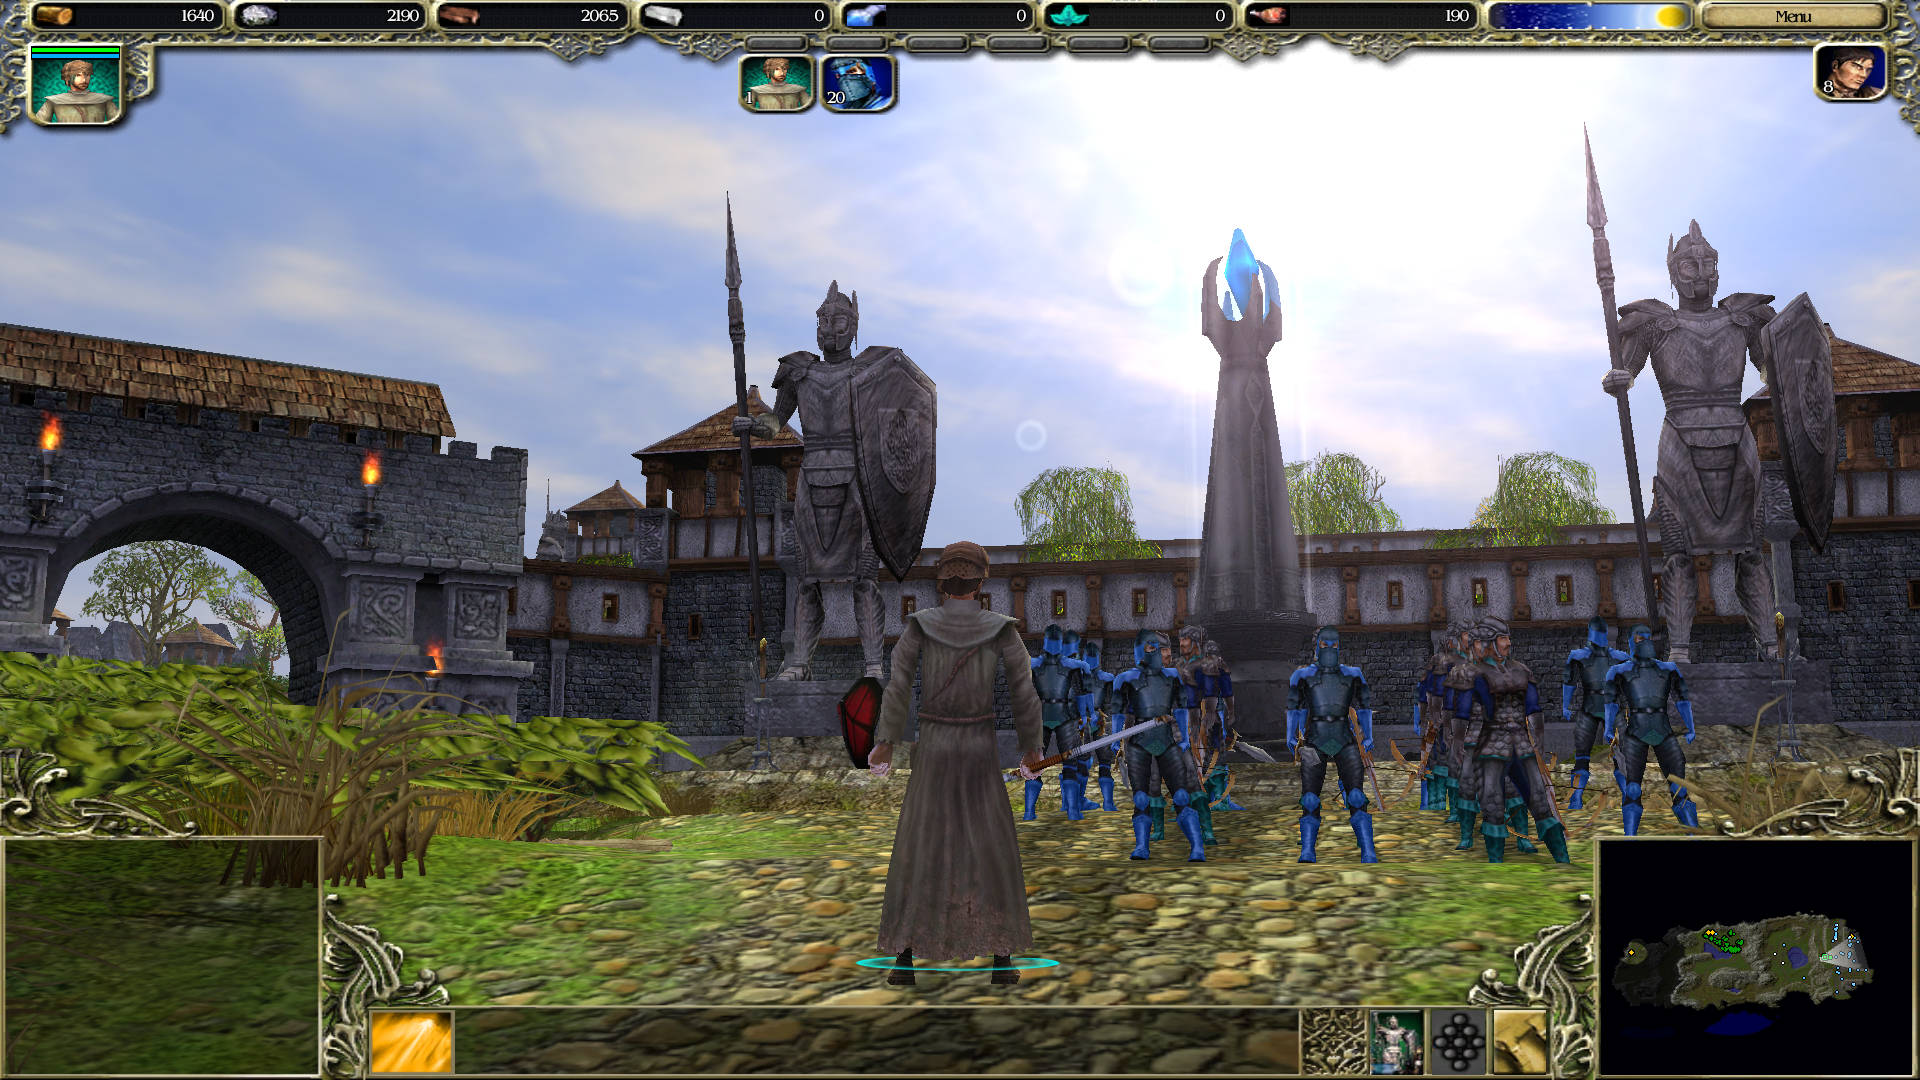 The hero with his army outside Greyfell